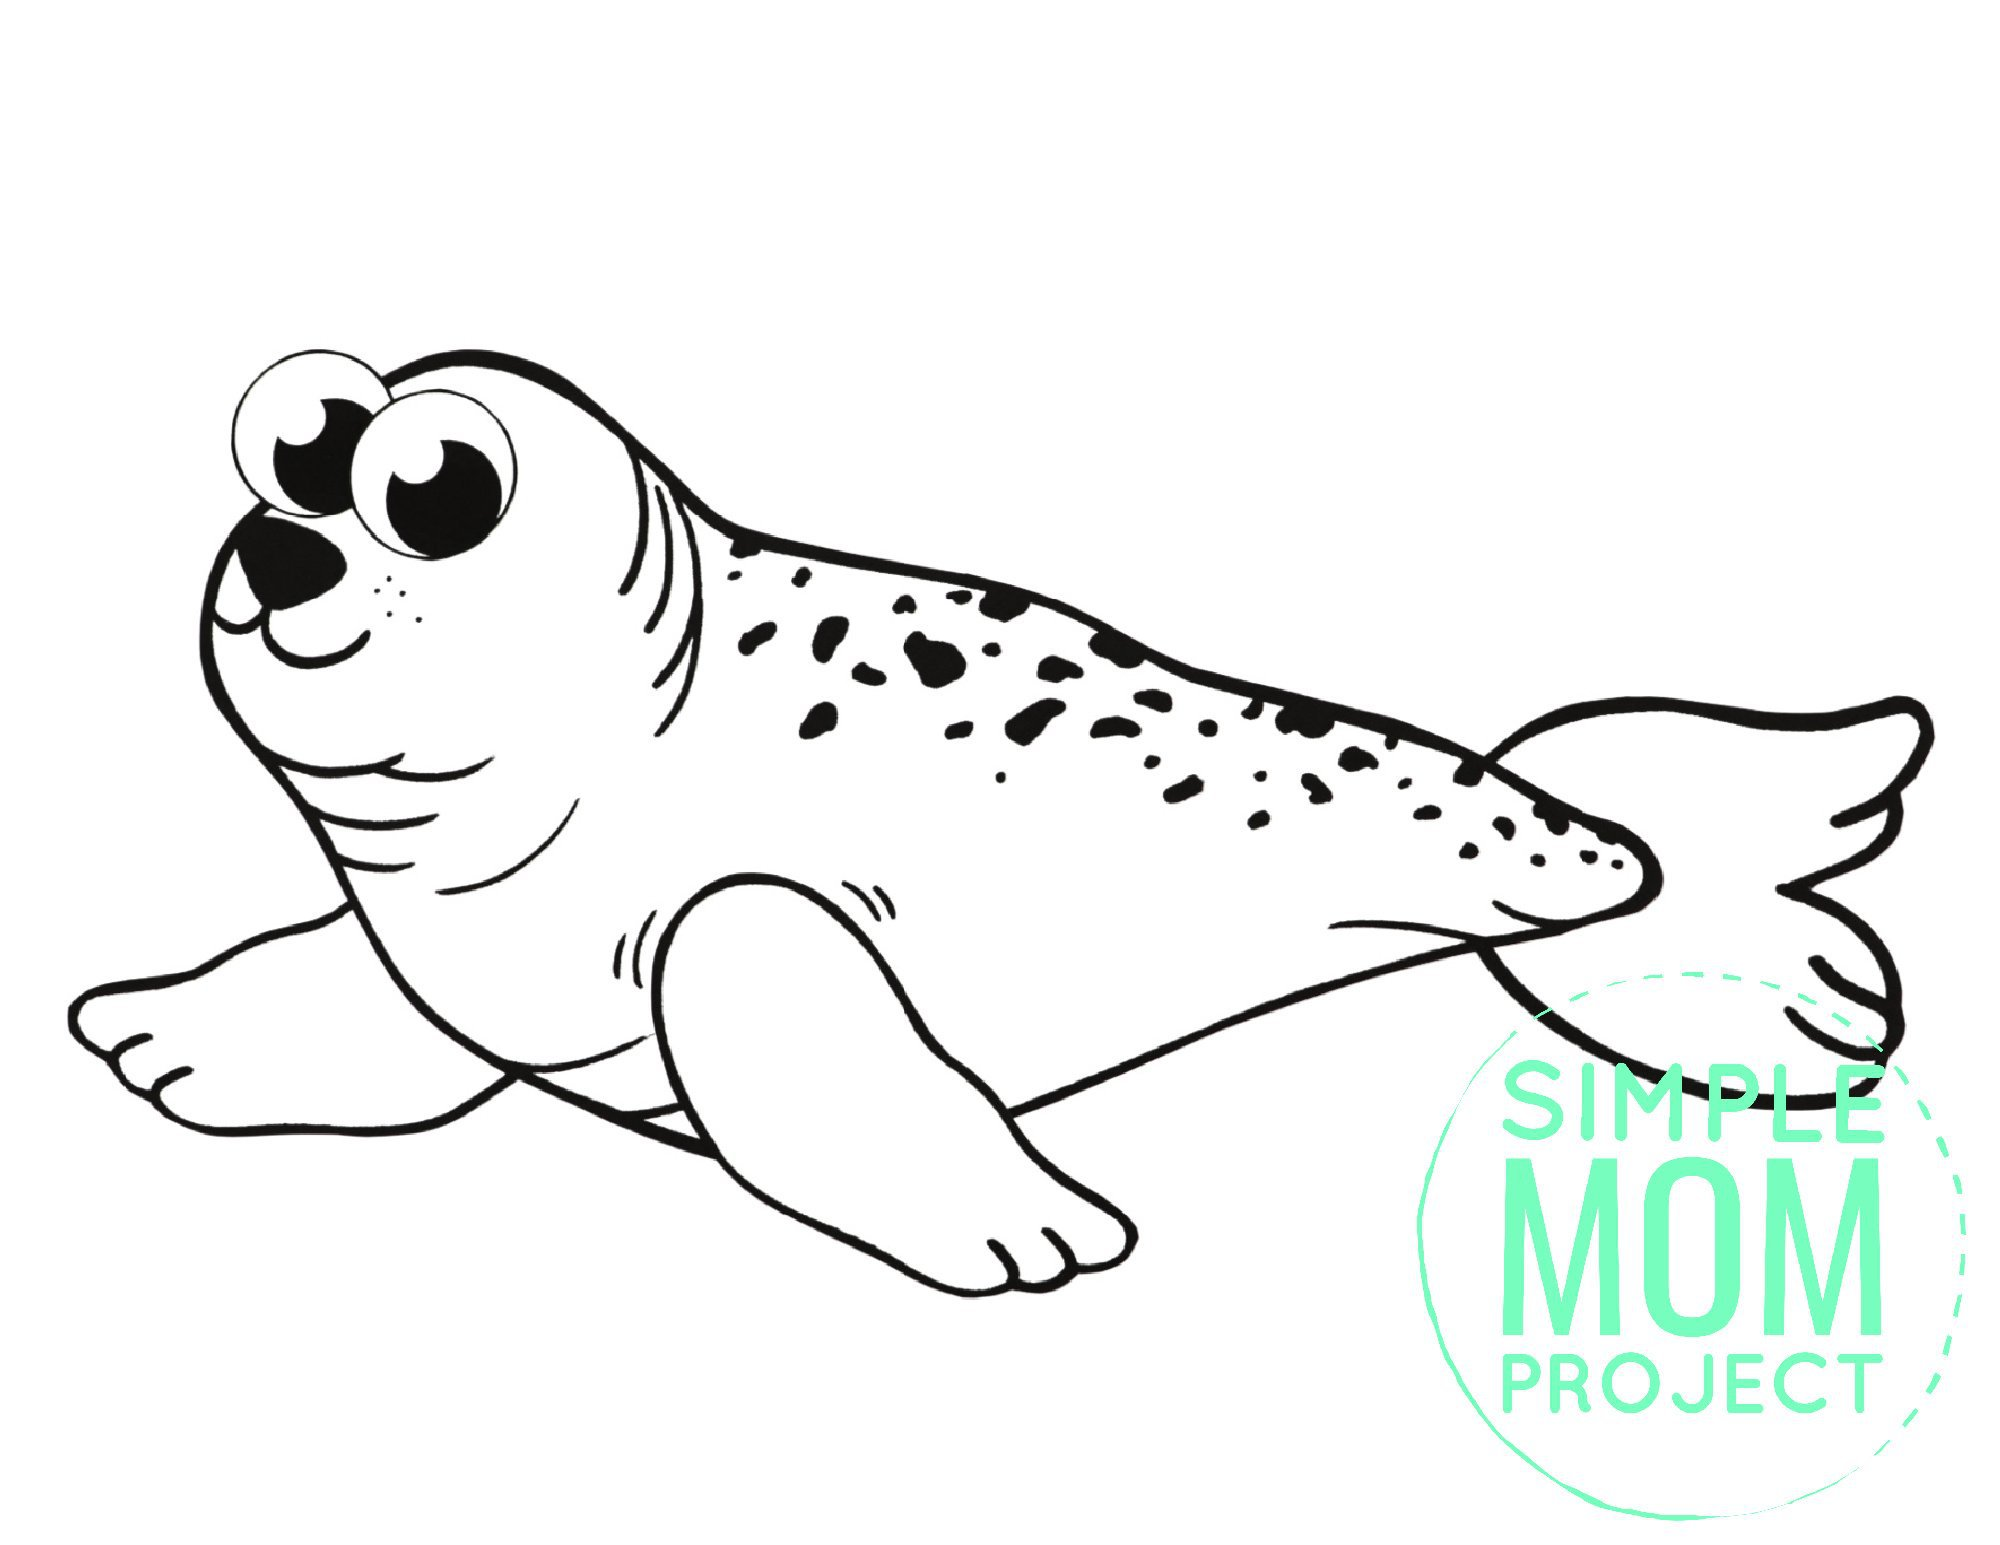 Free Printable Simple Arctic Animal Ringed Seal Coloring Page for kids preschoolers and toddlers